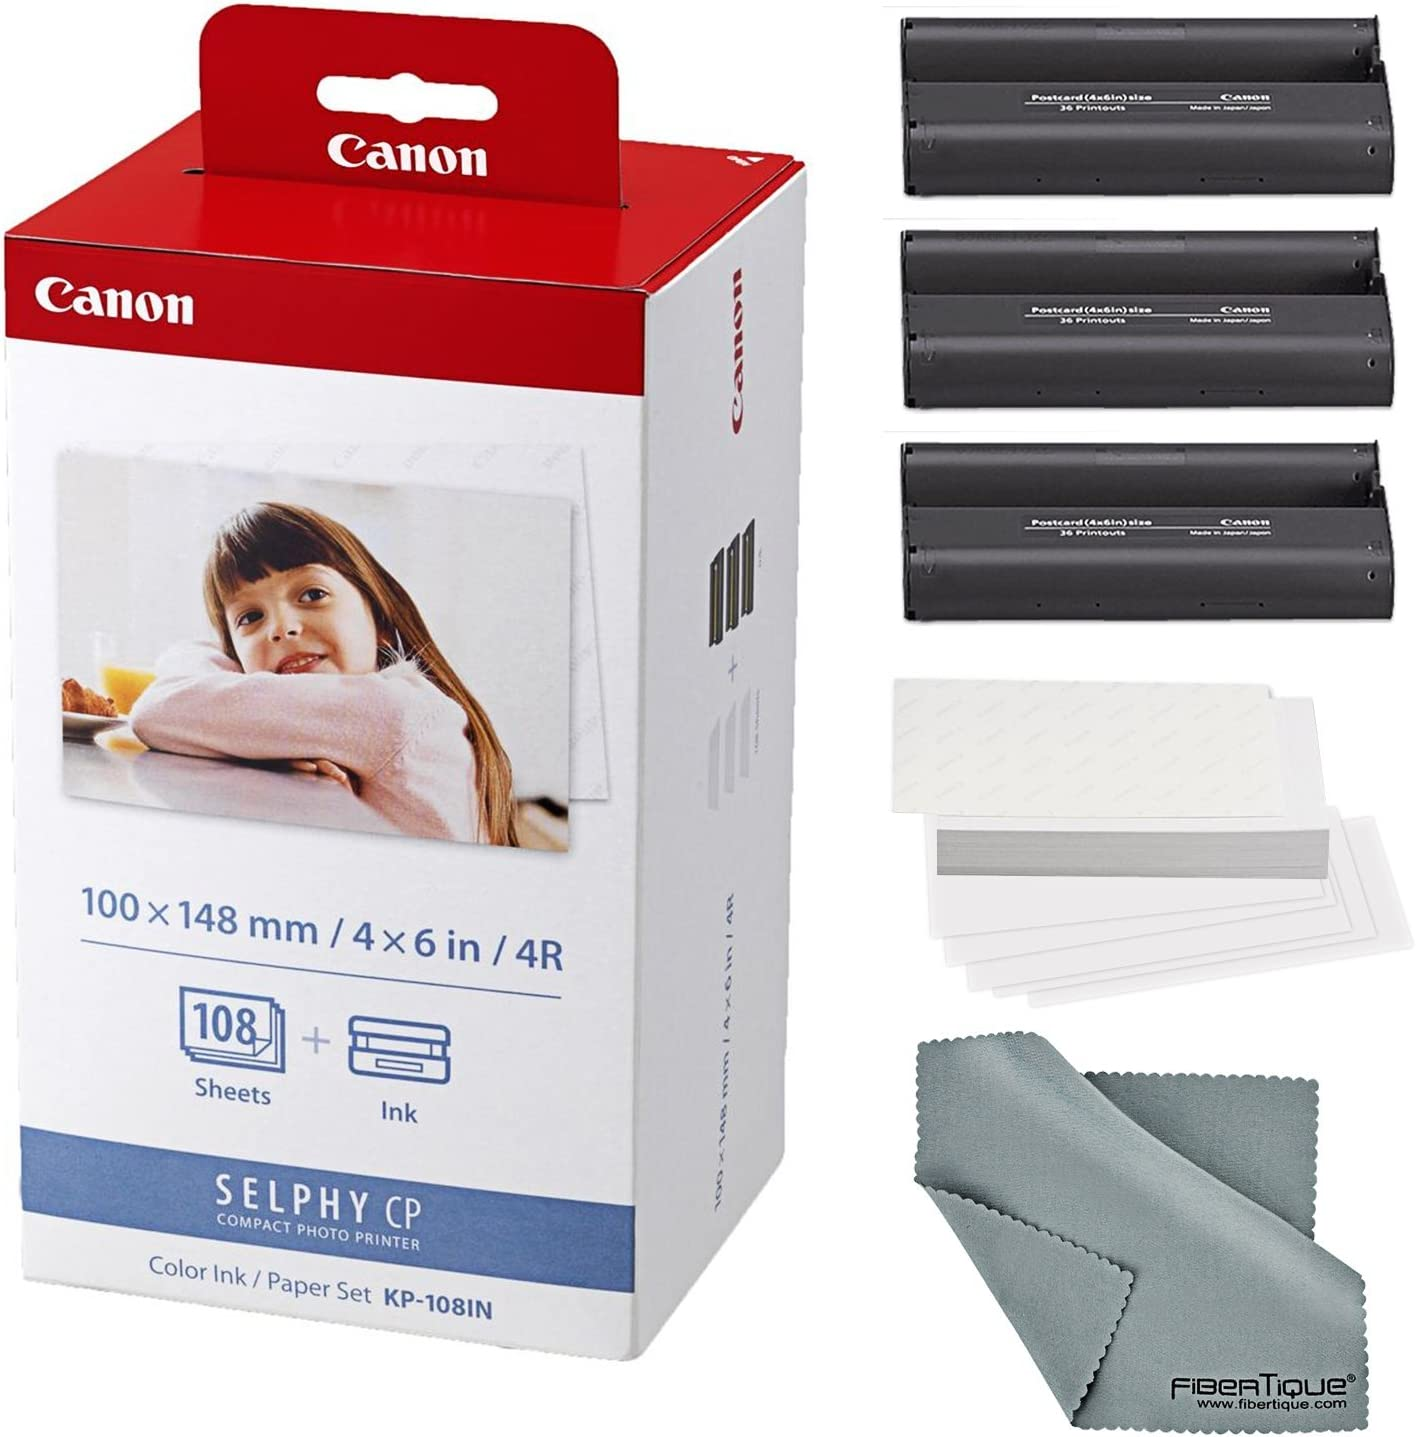 Canon KP-108IN Color Ink Paper Set 108 Sheets For SELPHY Compact Photo Printer